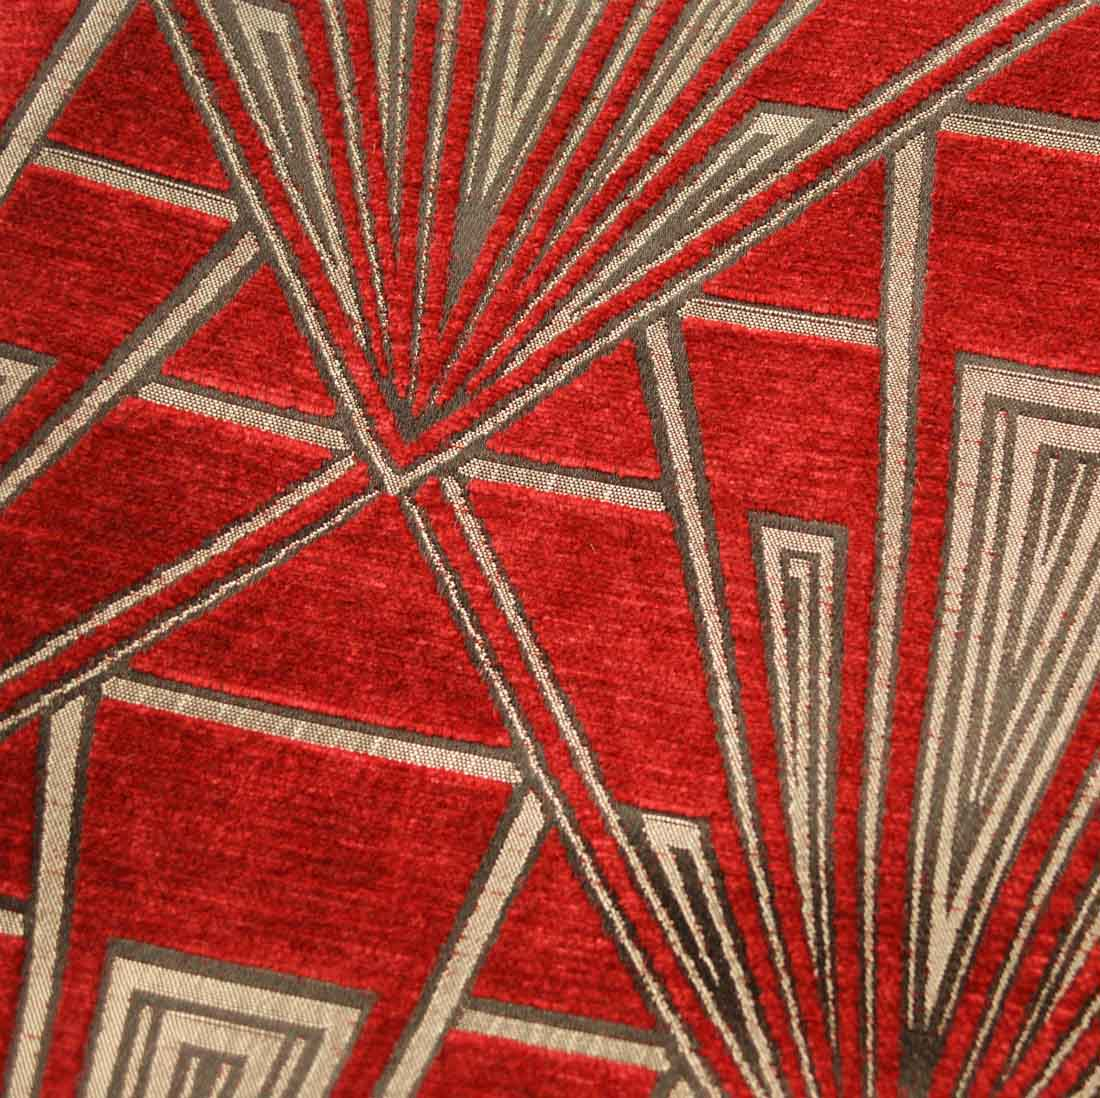 Geometric Art Deco Style Upholstery And Curtain Fabric